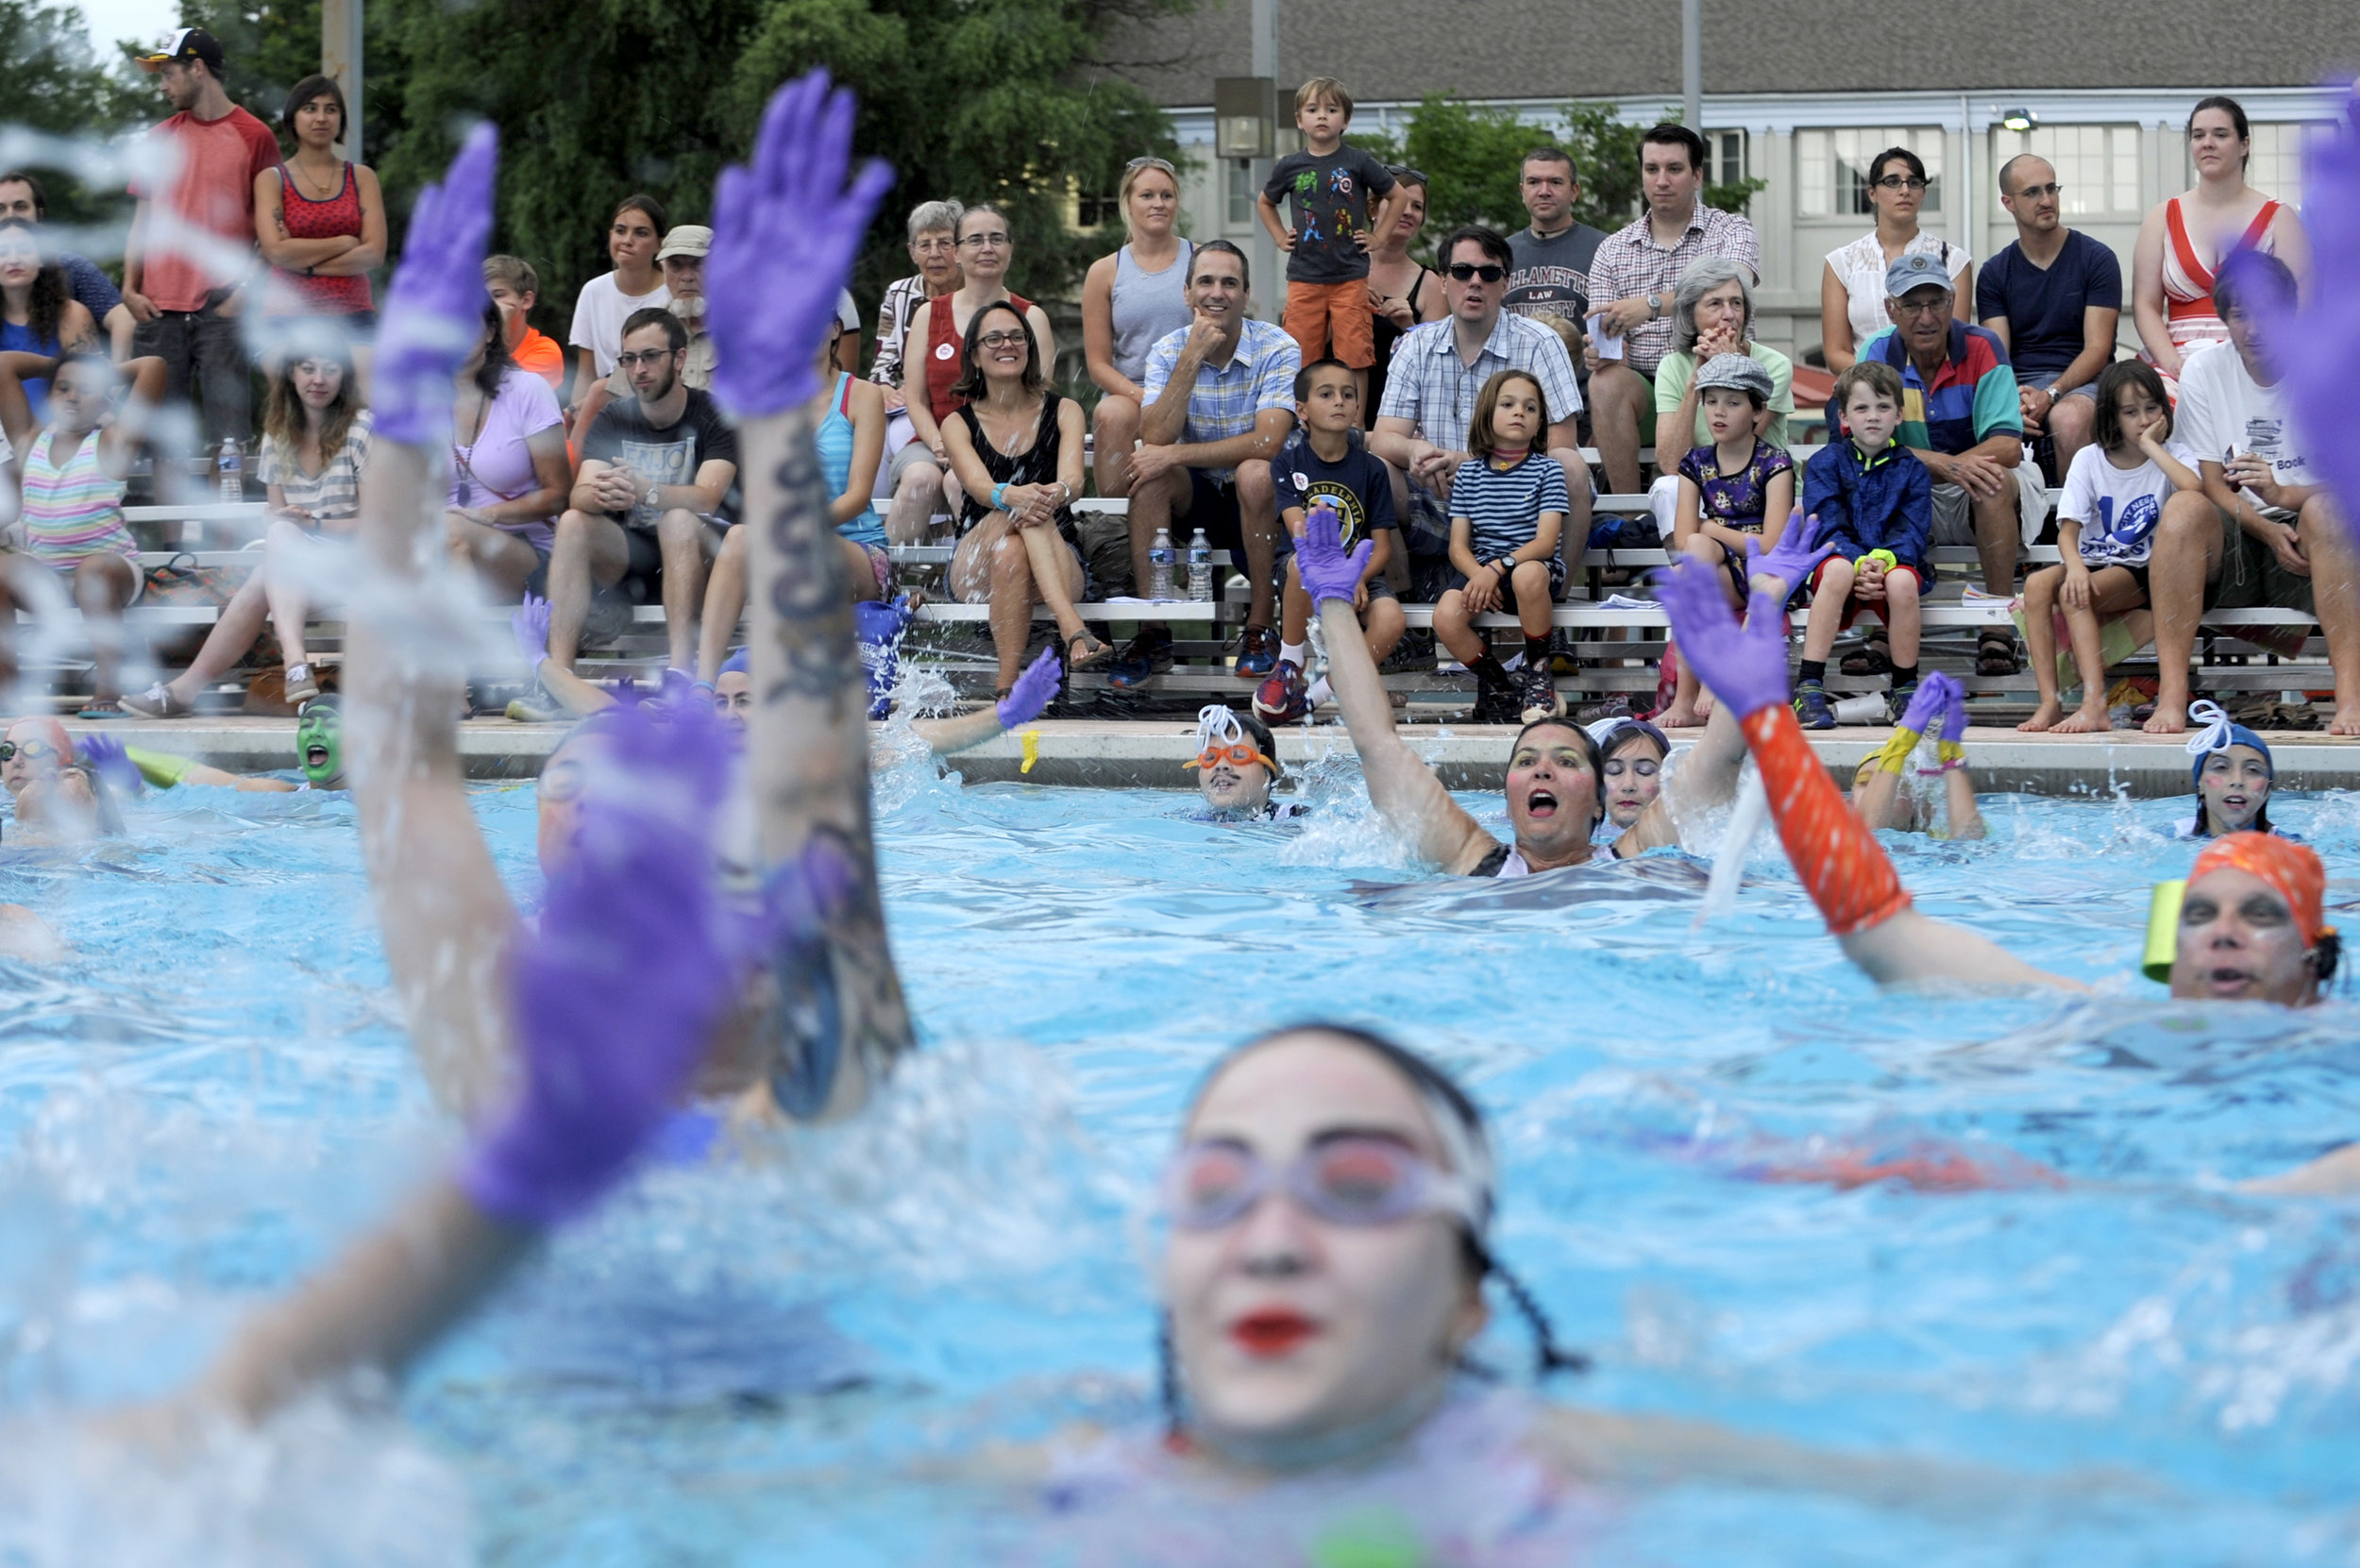 Fluid Movement, a Baltimore-based performance art group known for offbeat water ballets, roller skating musicals and disco workouts, performs its 15th annual synchronized swimming ballet at Druid Park Pool in Baltimore, Maryland on Saturday, July 30, 2016.